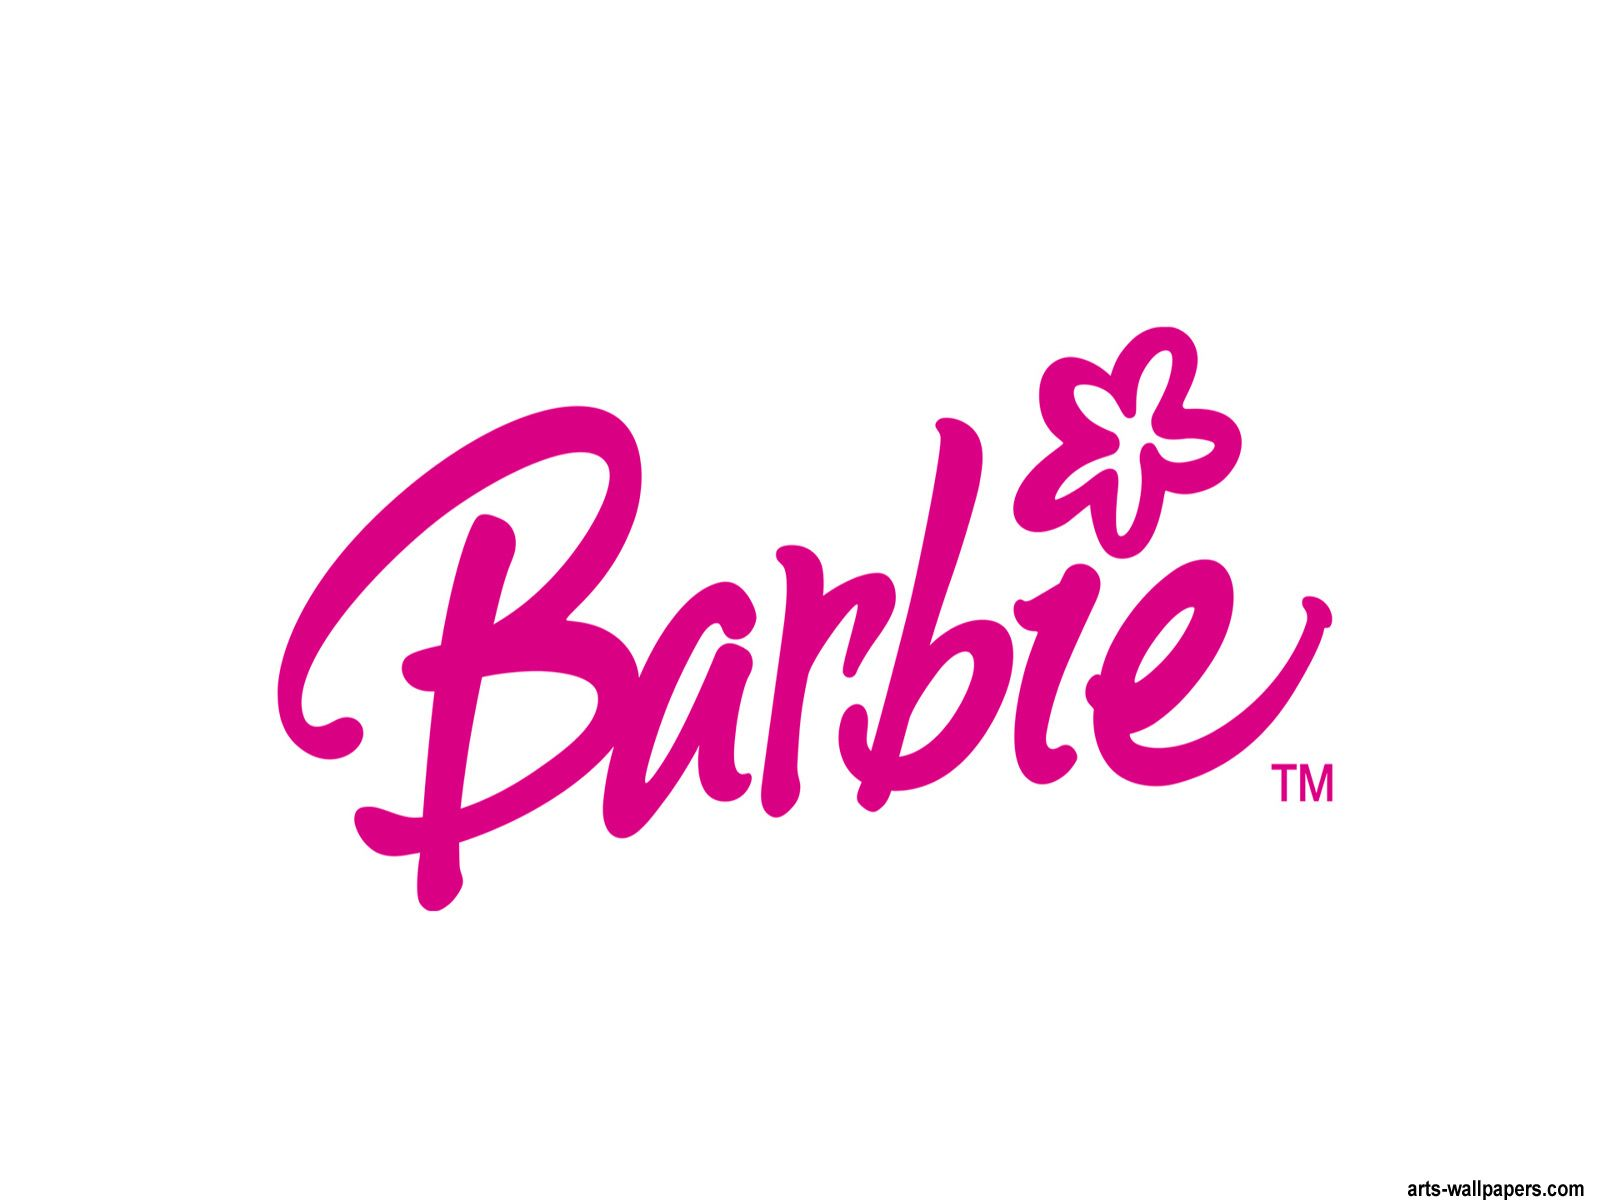 Barbie Or Your Name Script W Silhouette Vinyl Decal Stickers Font Logo Birthday Baby Shower Party Treat Bags Favors Ideas Pink Black Barbie Barbie Silhouette Silhouette Vinyl